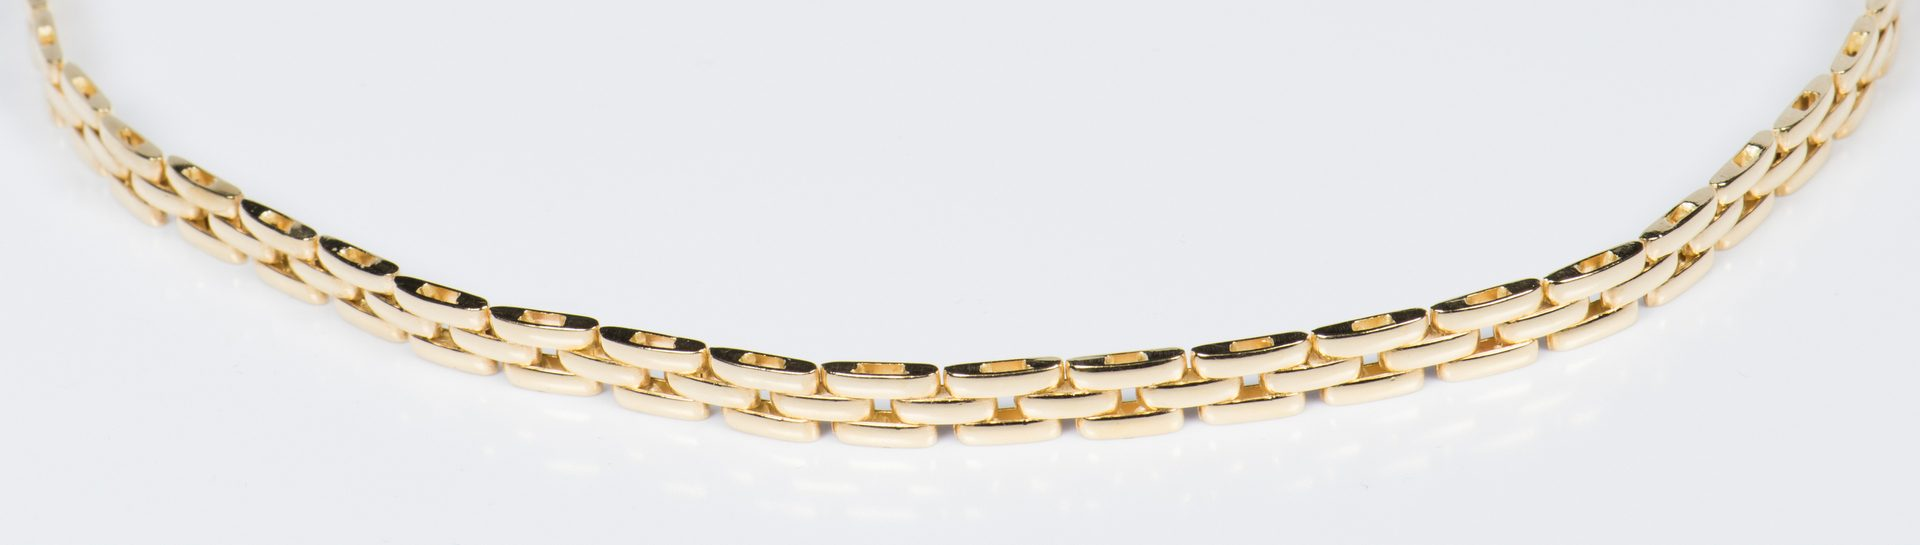 Lot 314: 18K Panther link Necklace, Italy